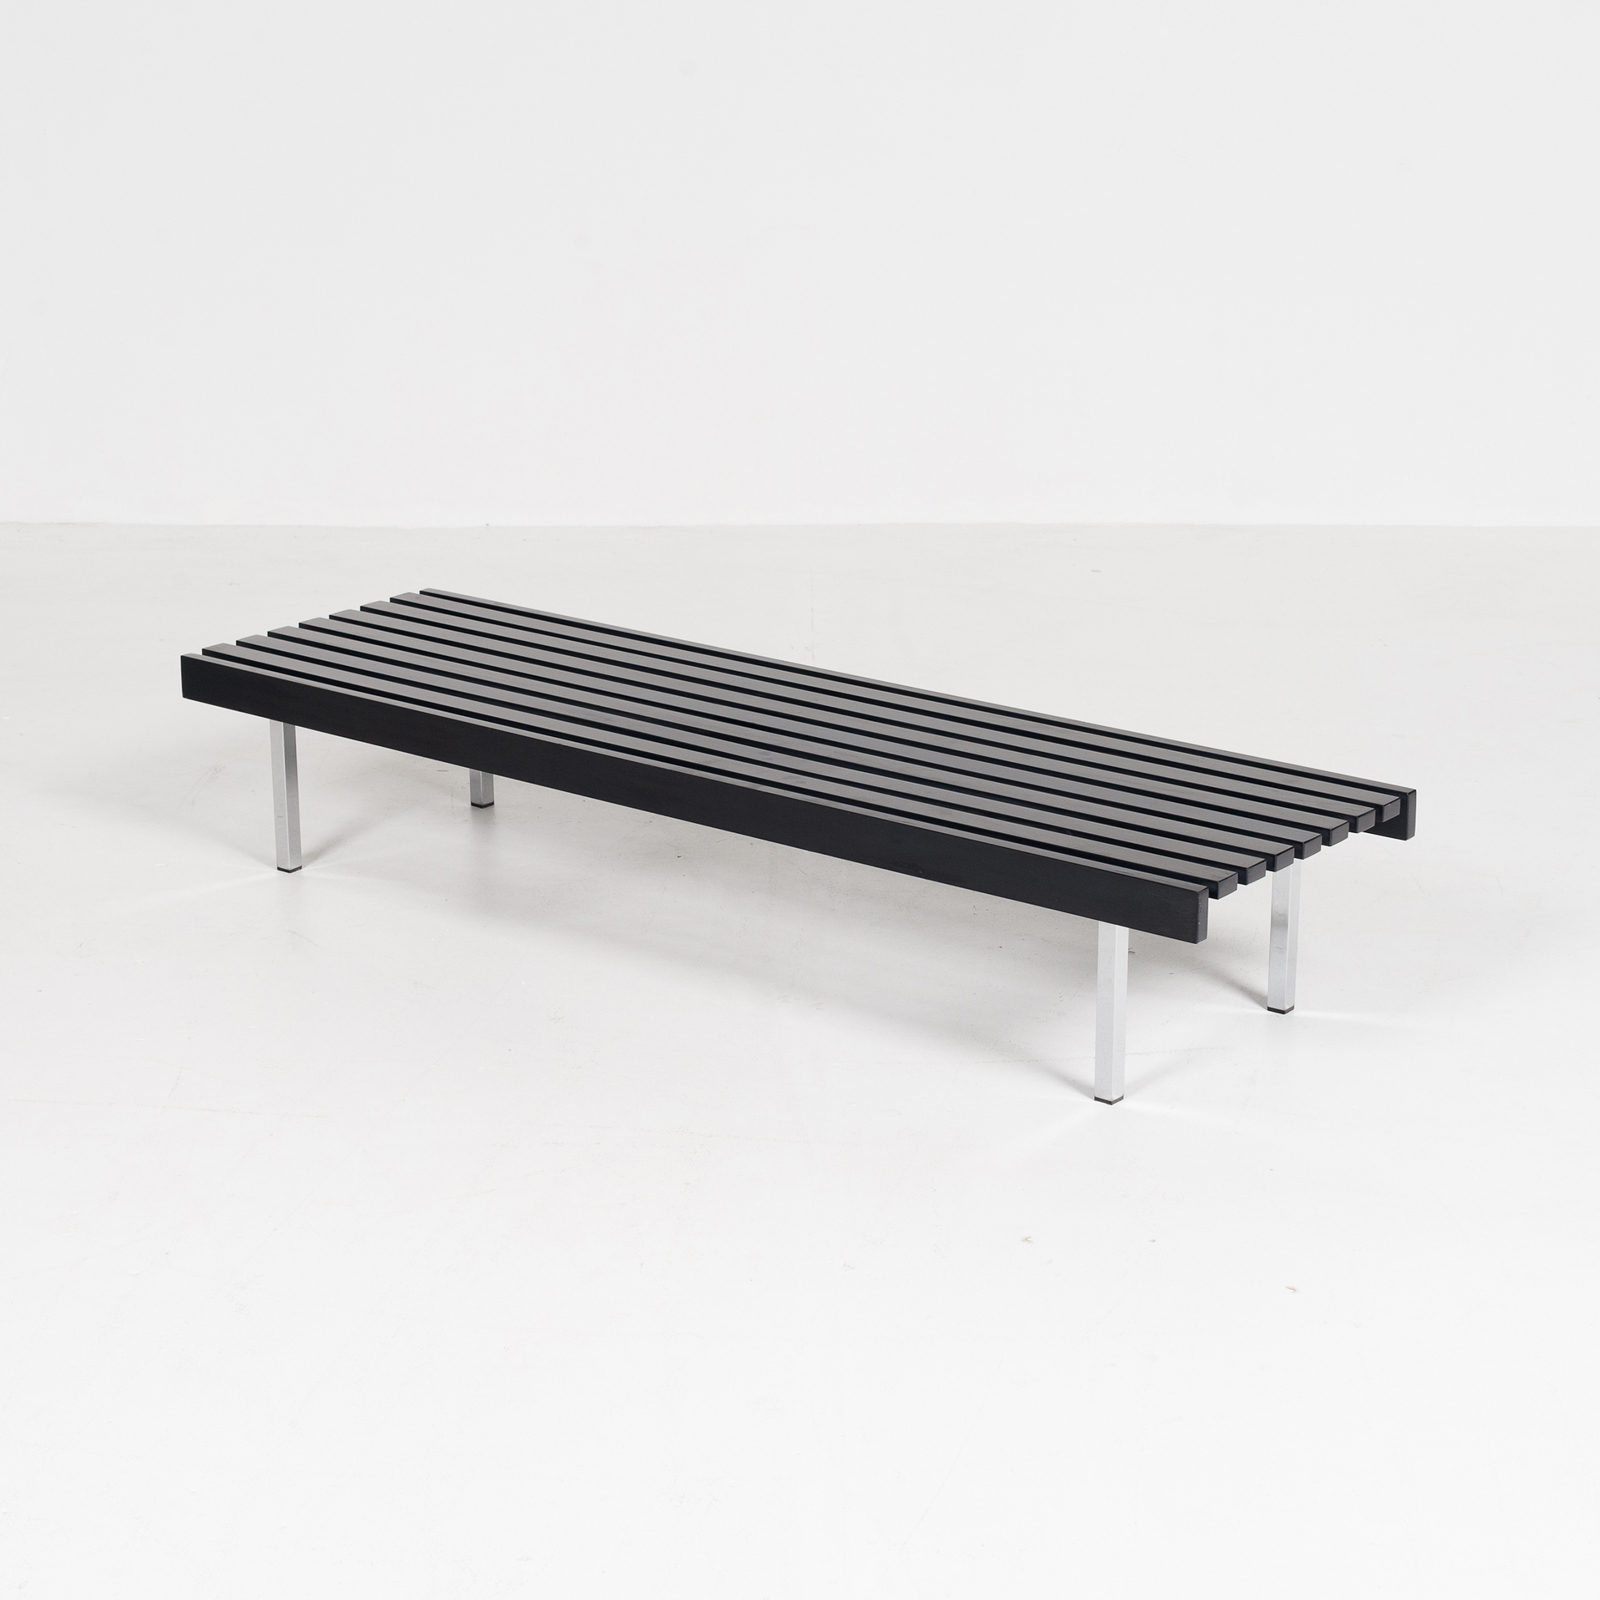 Hero Slatted Bench By 't Spectrum, 1960s, The Netherlands4